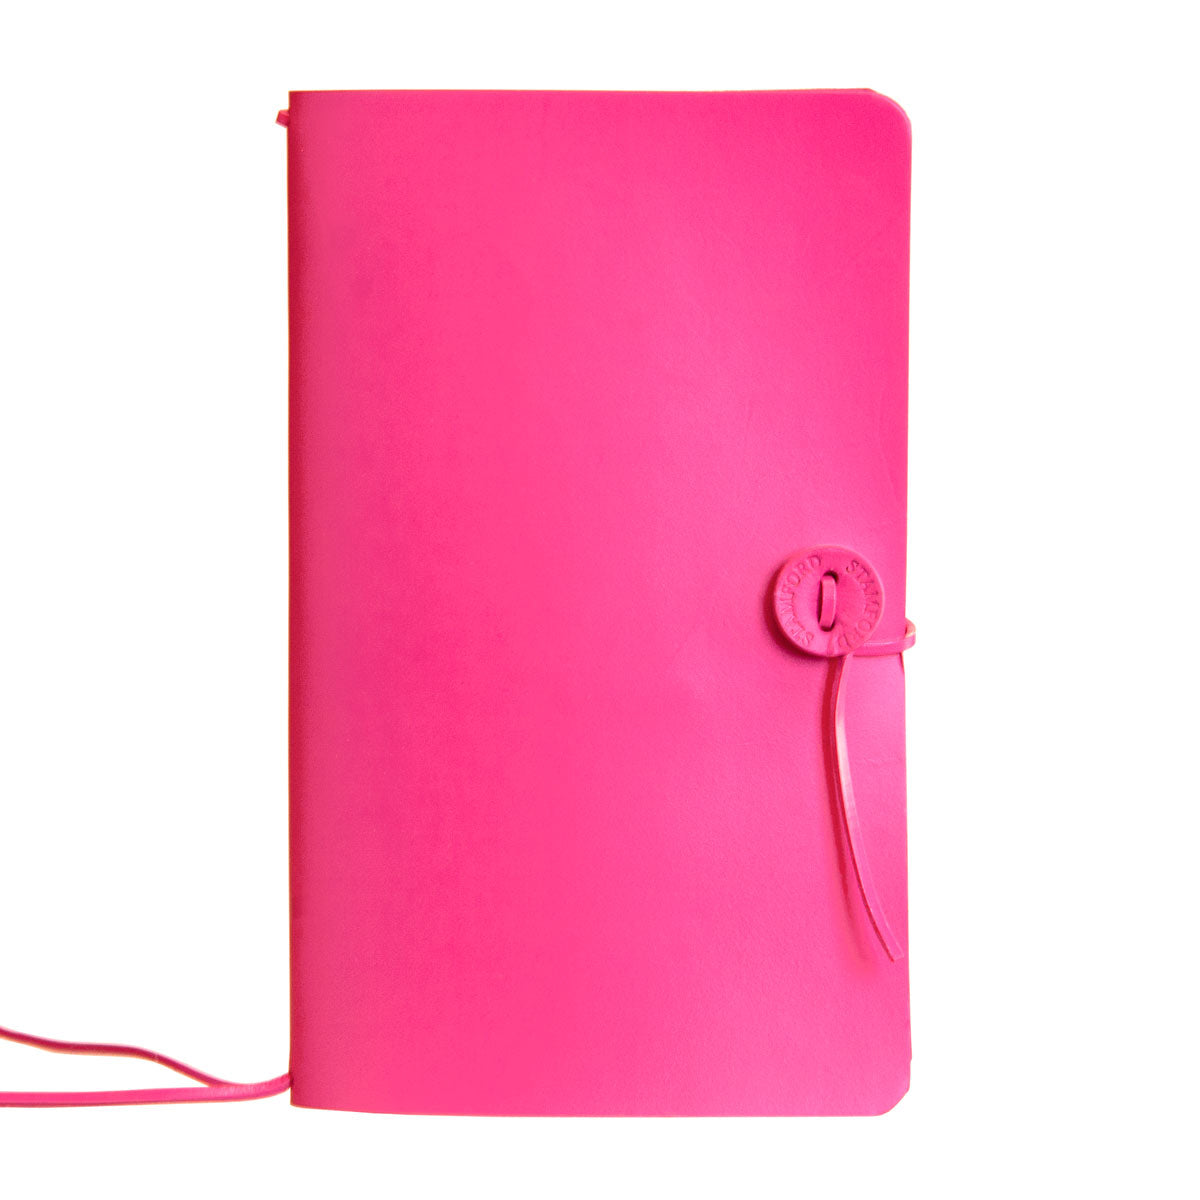 Pink leather refillable travellers journal